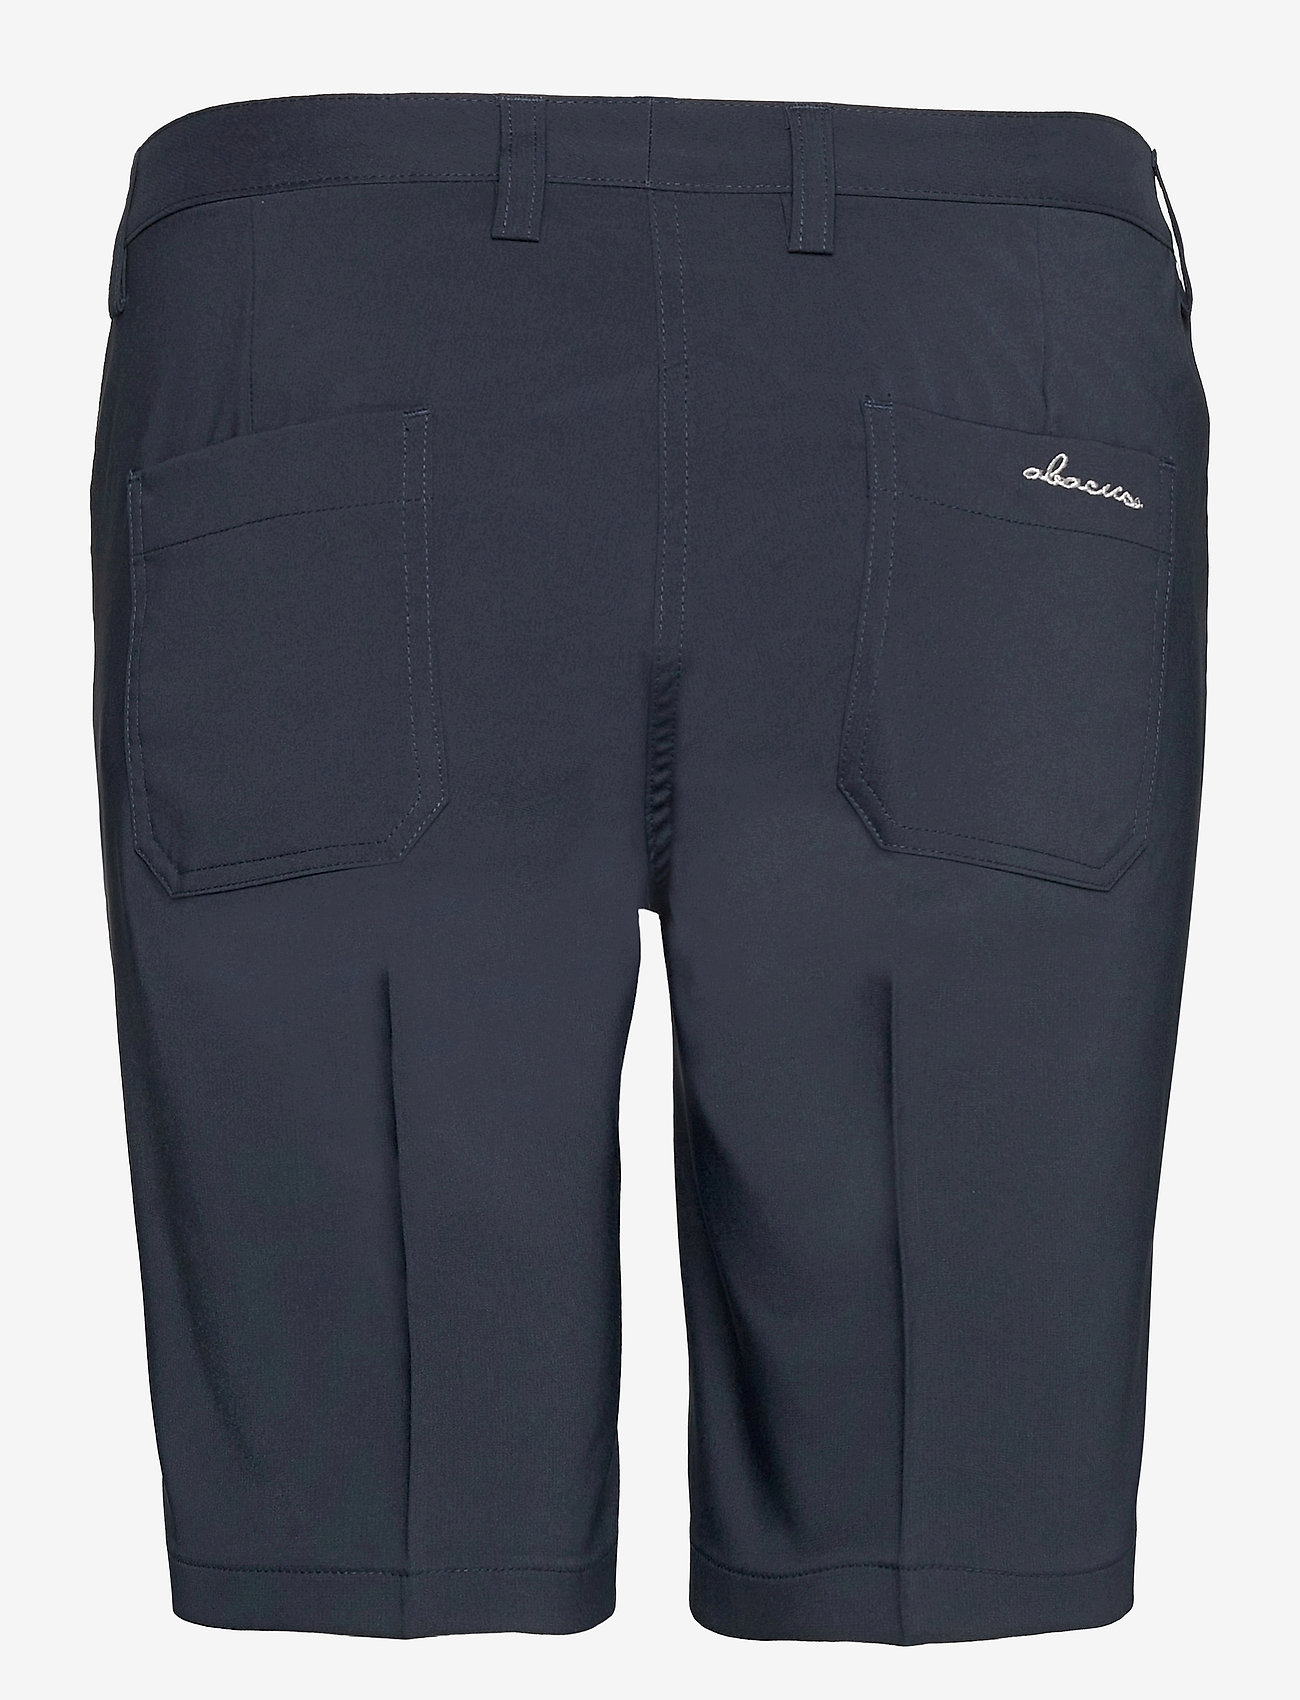 Abacus - Lds Cleek stretch shorts 46cm - golfshorts - navy - 1